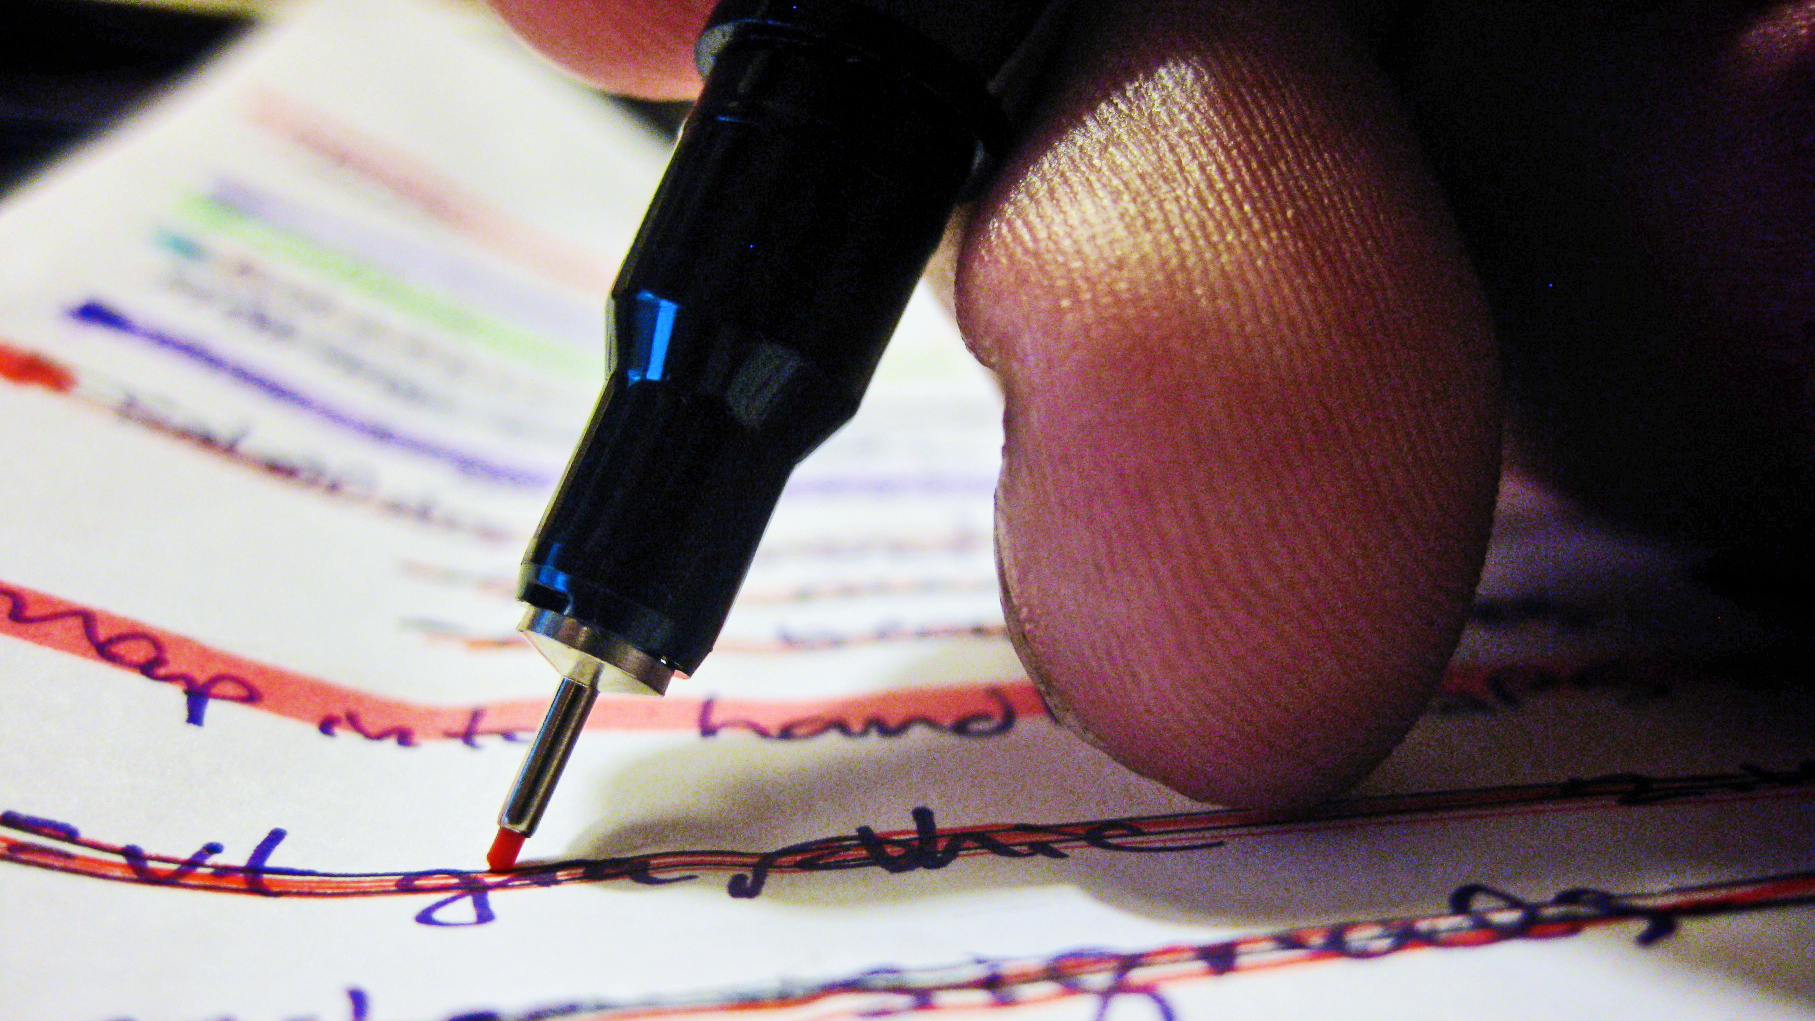 5 Free Apps For Making Better To-Do Lists